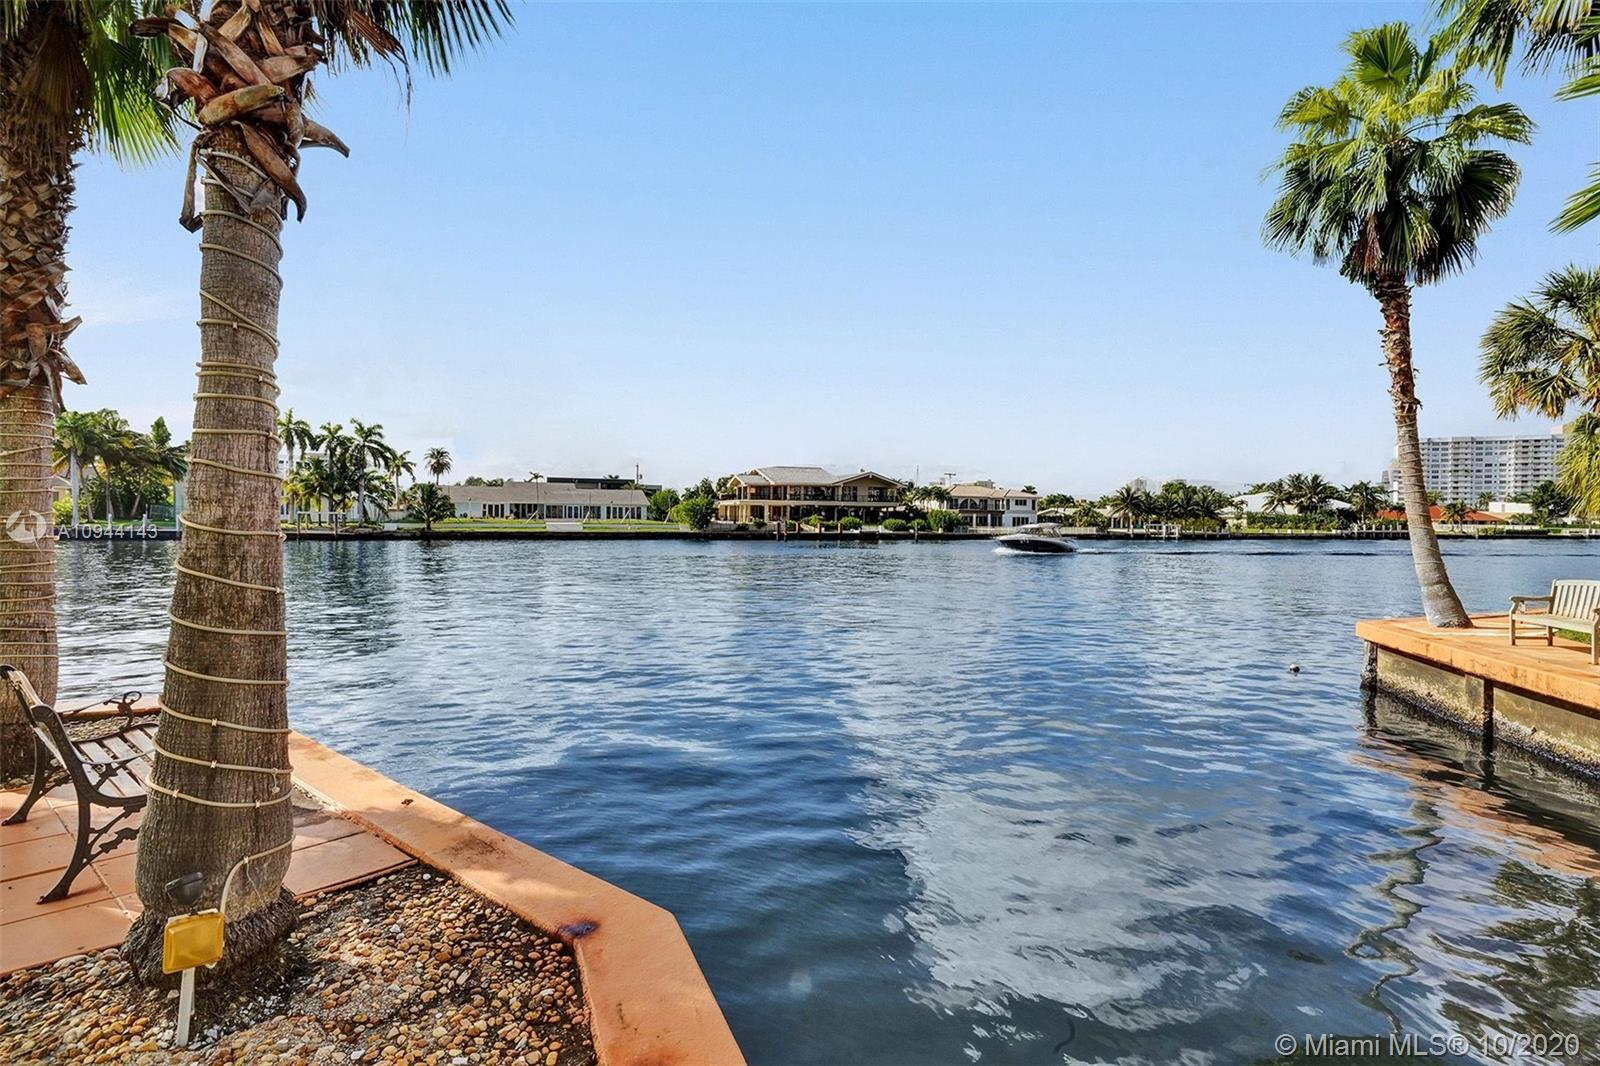 BEAUTIFUL AND SPACIOUS UPDATED 2BE/2BATH, NICE VIEW ON THE POOL AND INTRACOASTAL FROM THE BALCONY.